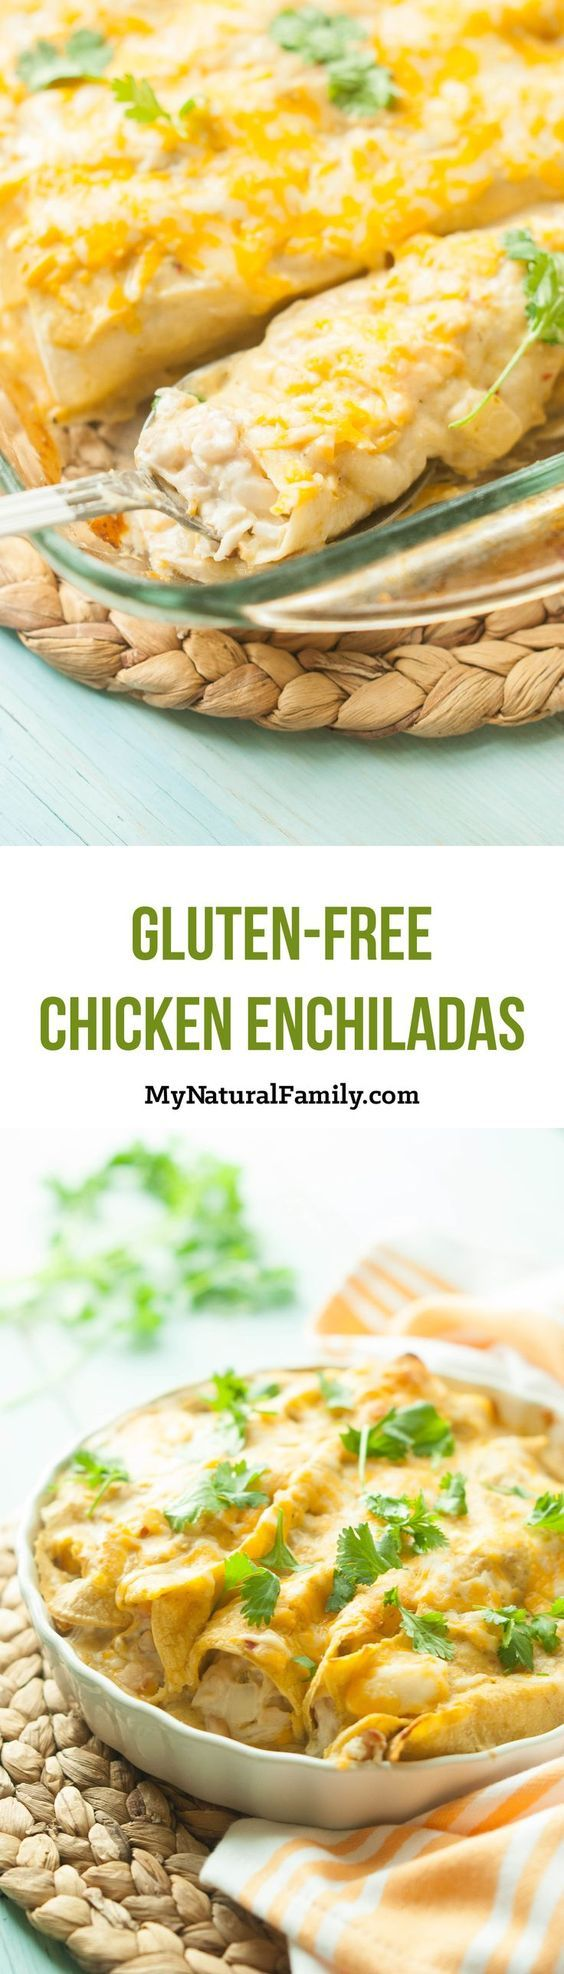 These gluten free chicken enchiladas are hearty, super flavorful, and are topped with an easy, gluten free sauce.